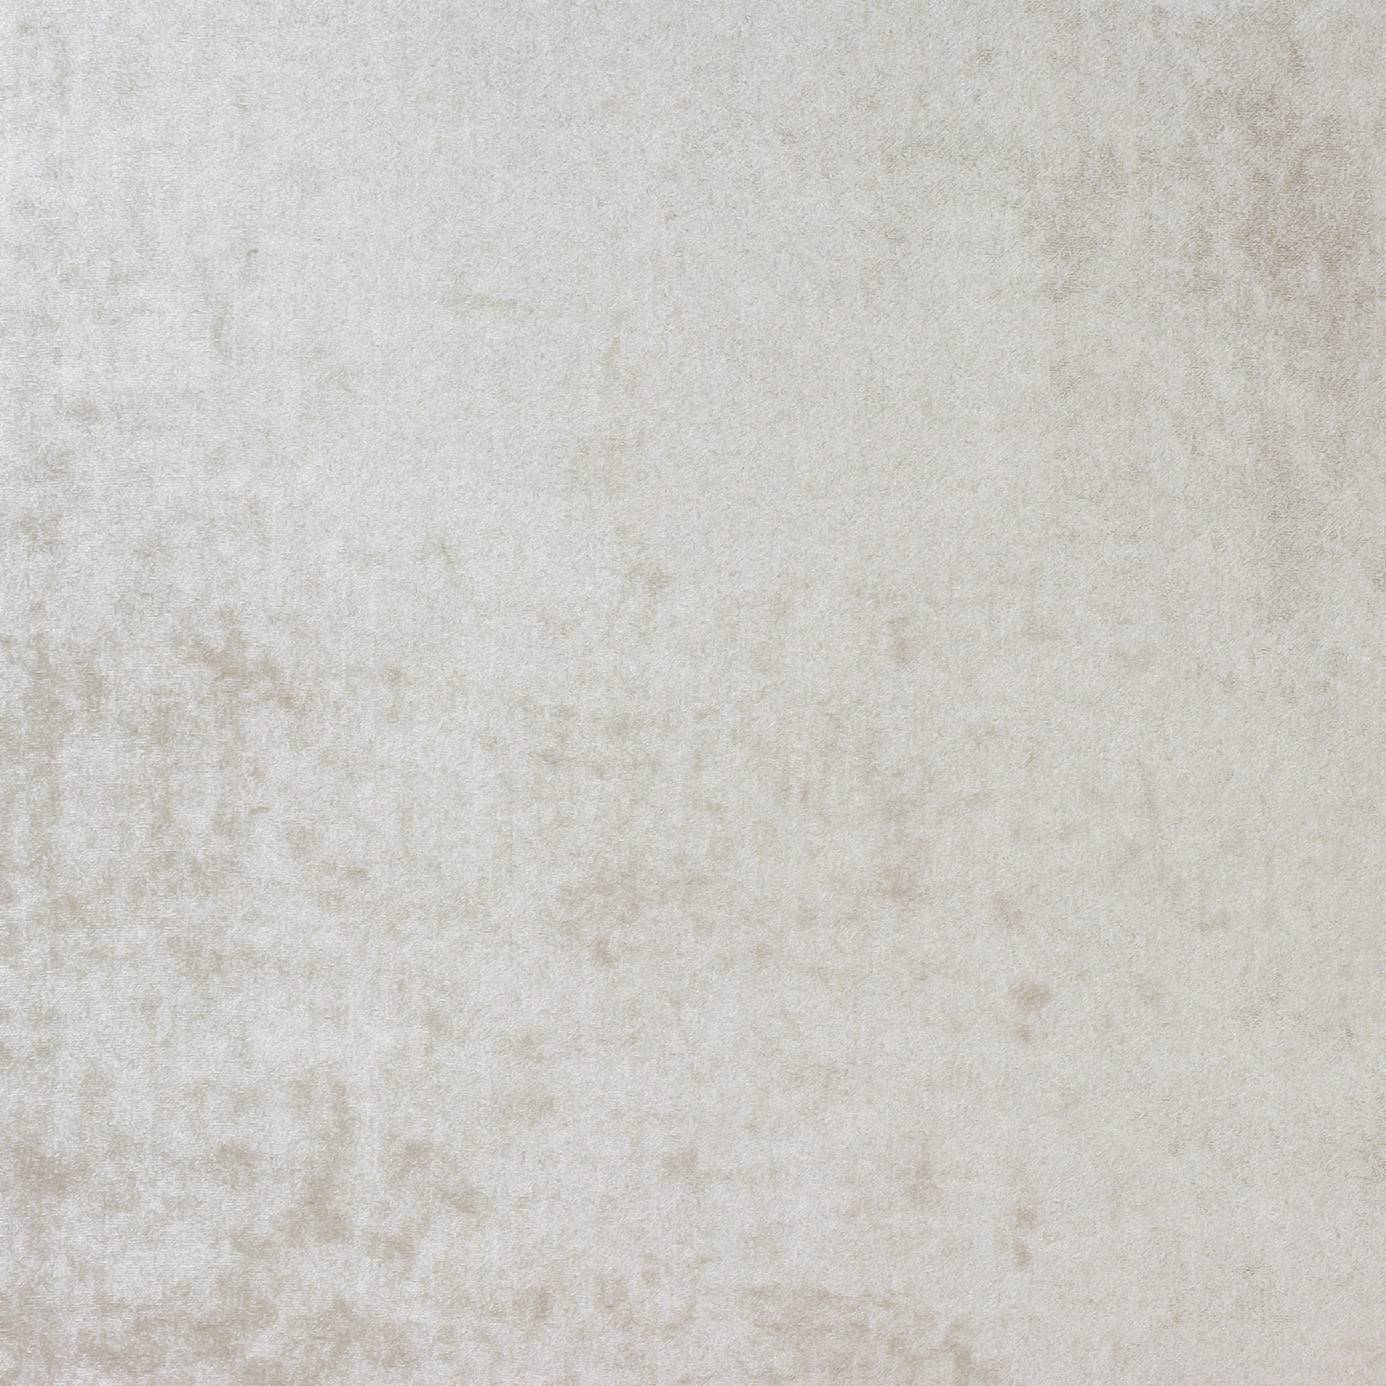 Curtains Fabric Texture